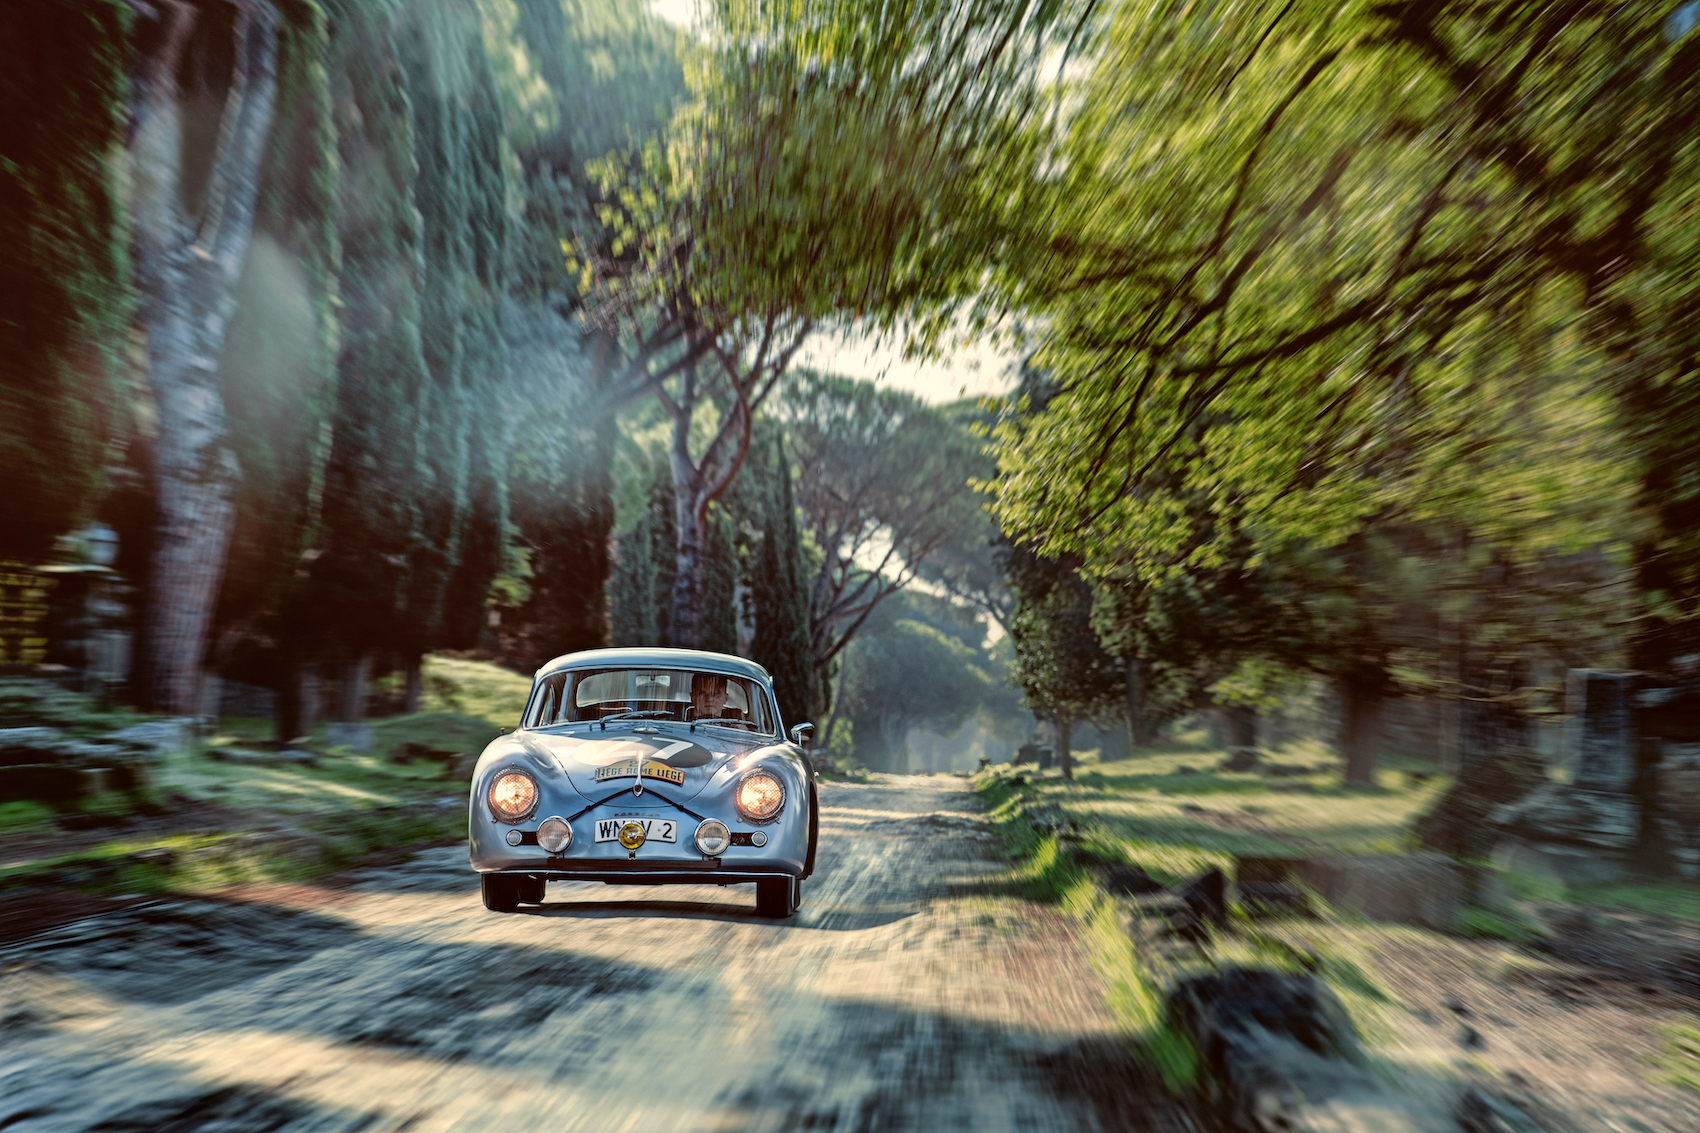 The Porsche 356 on the road to Rome